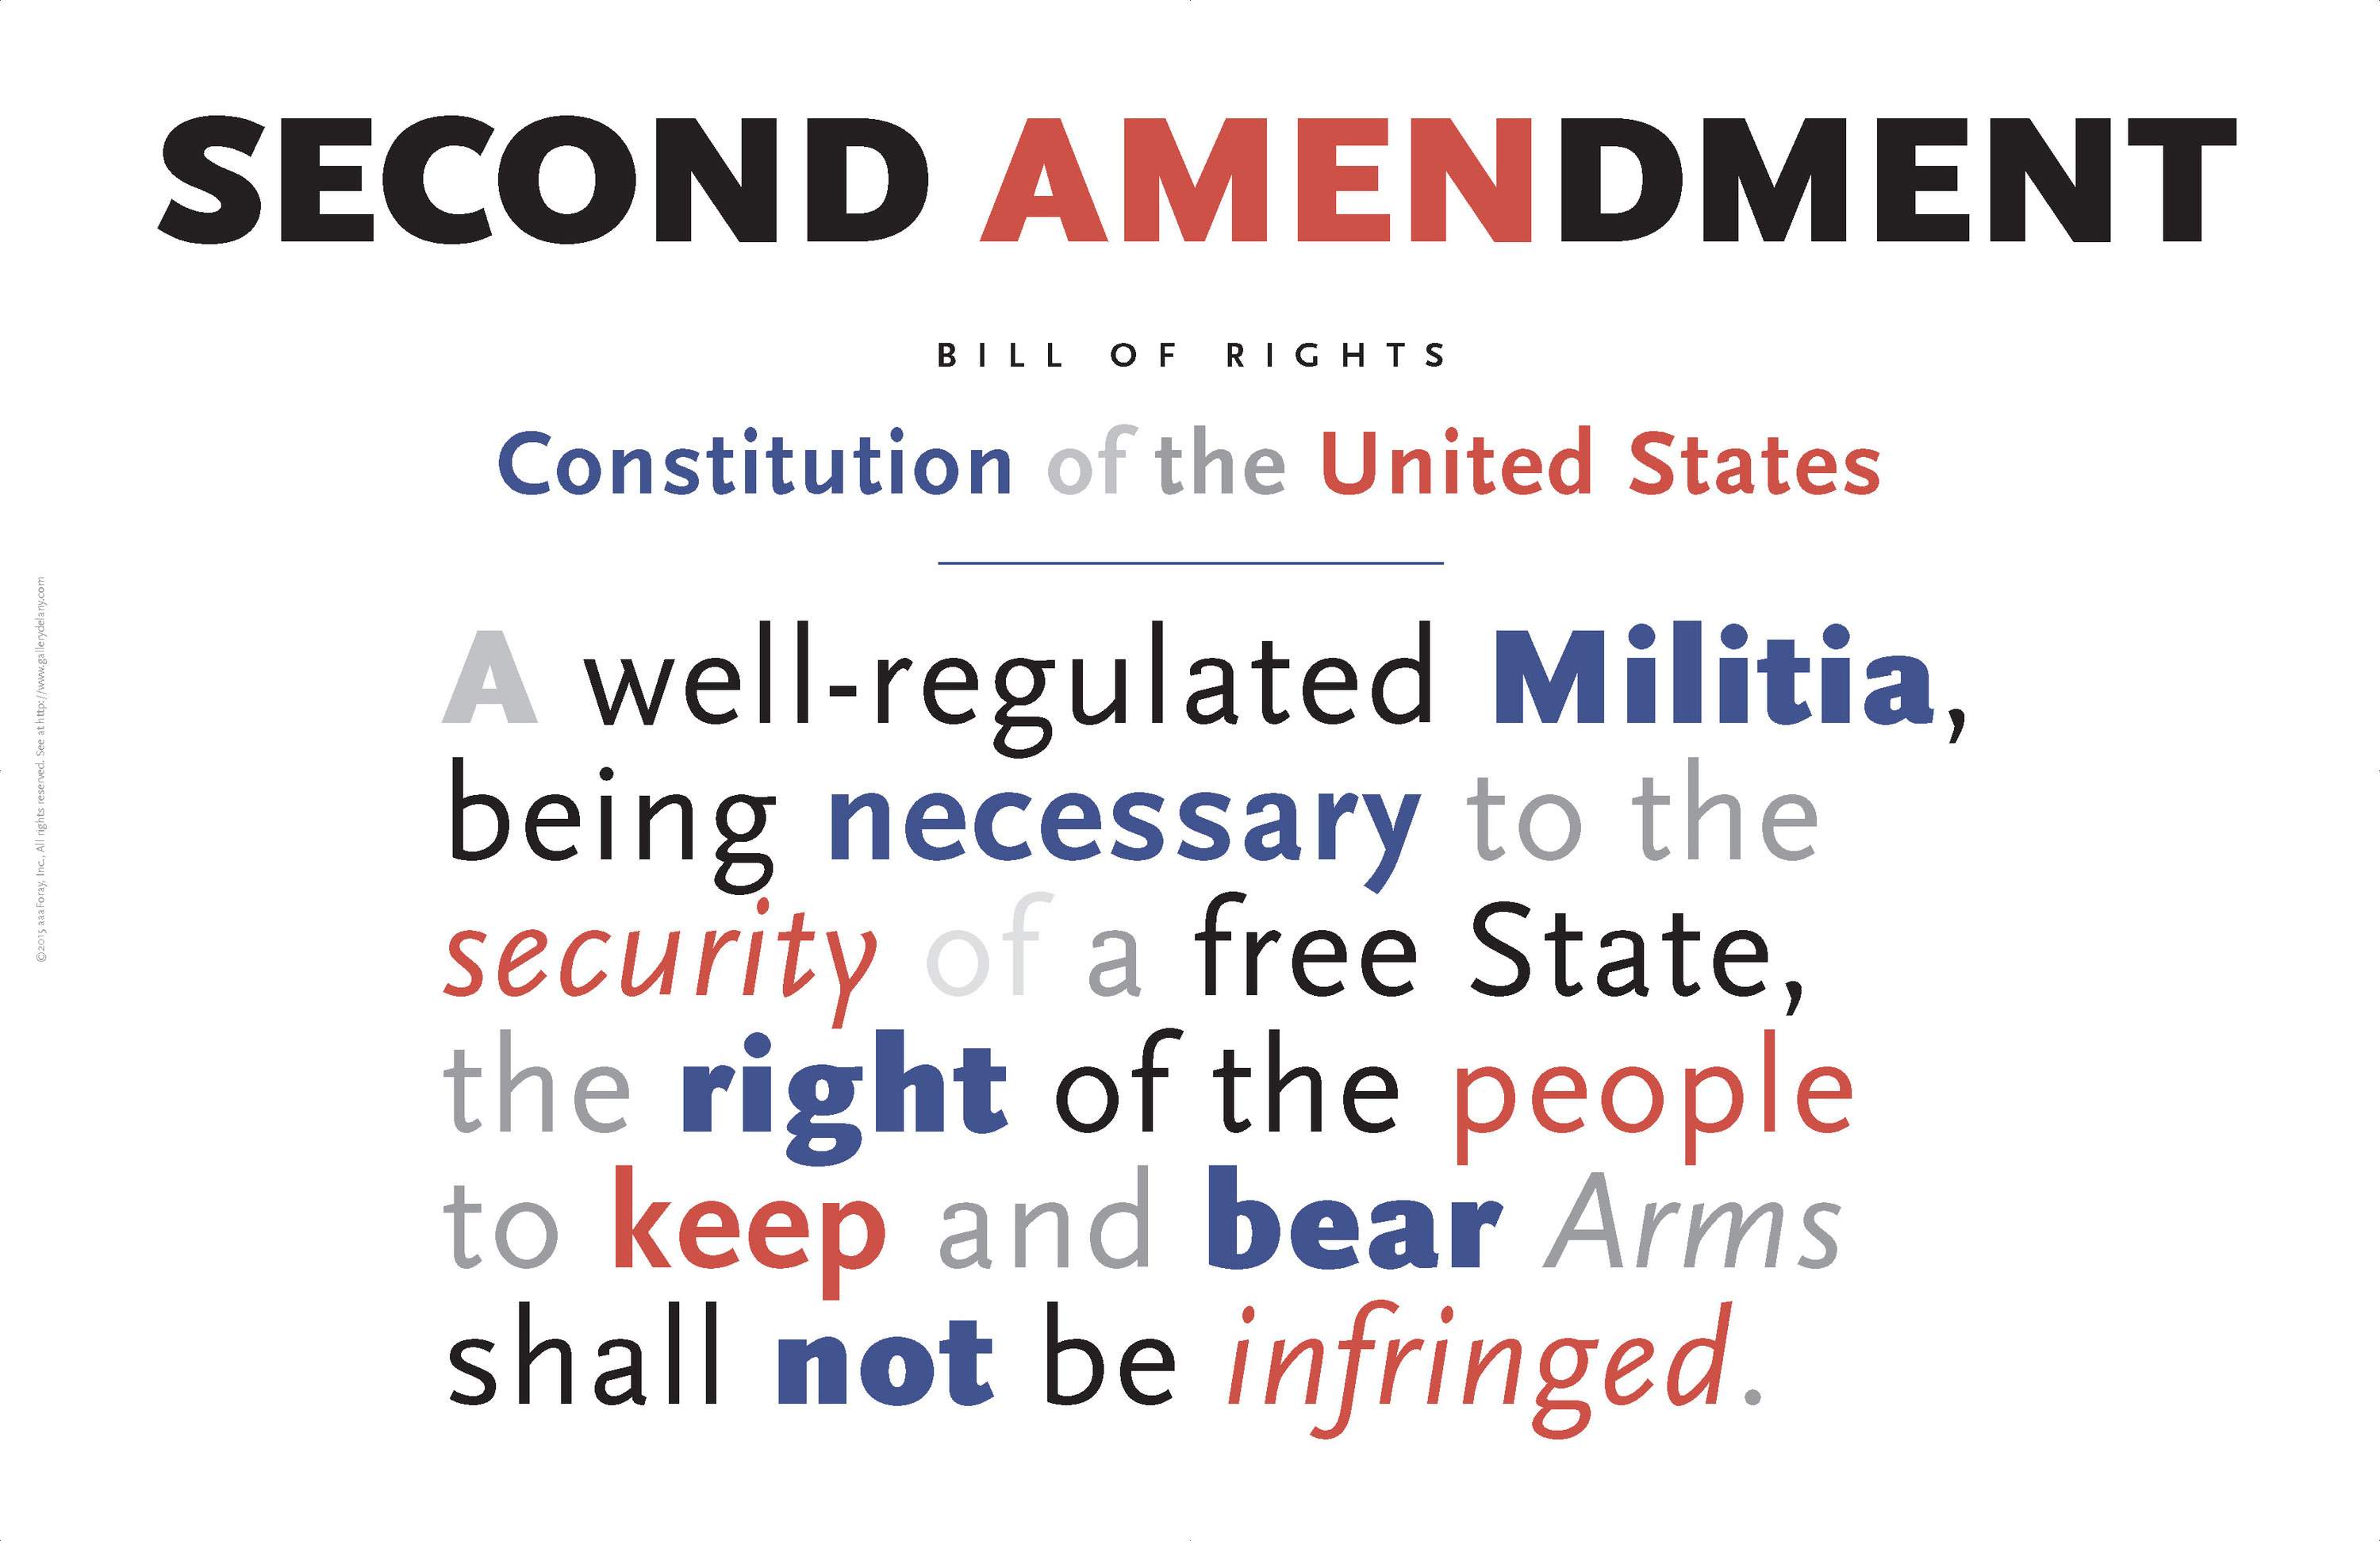 <div class='title'>           Second Amendment Americana Poster          </div>                 <div class='description'>           A key topic of debate these days, much homework to do to protect these basic liberties.          </div>